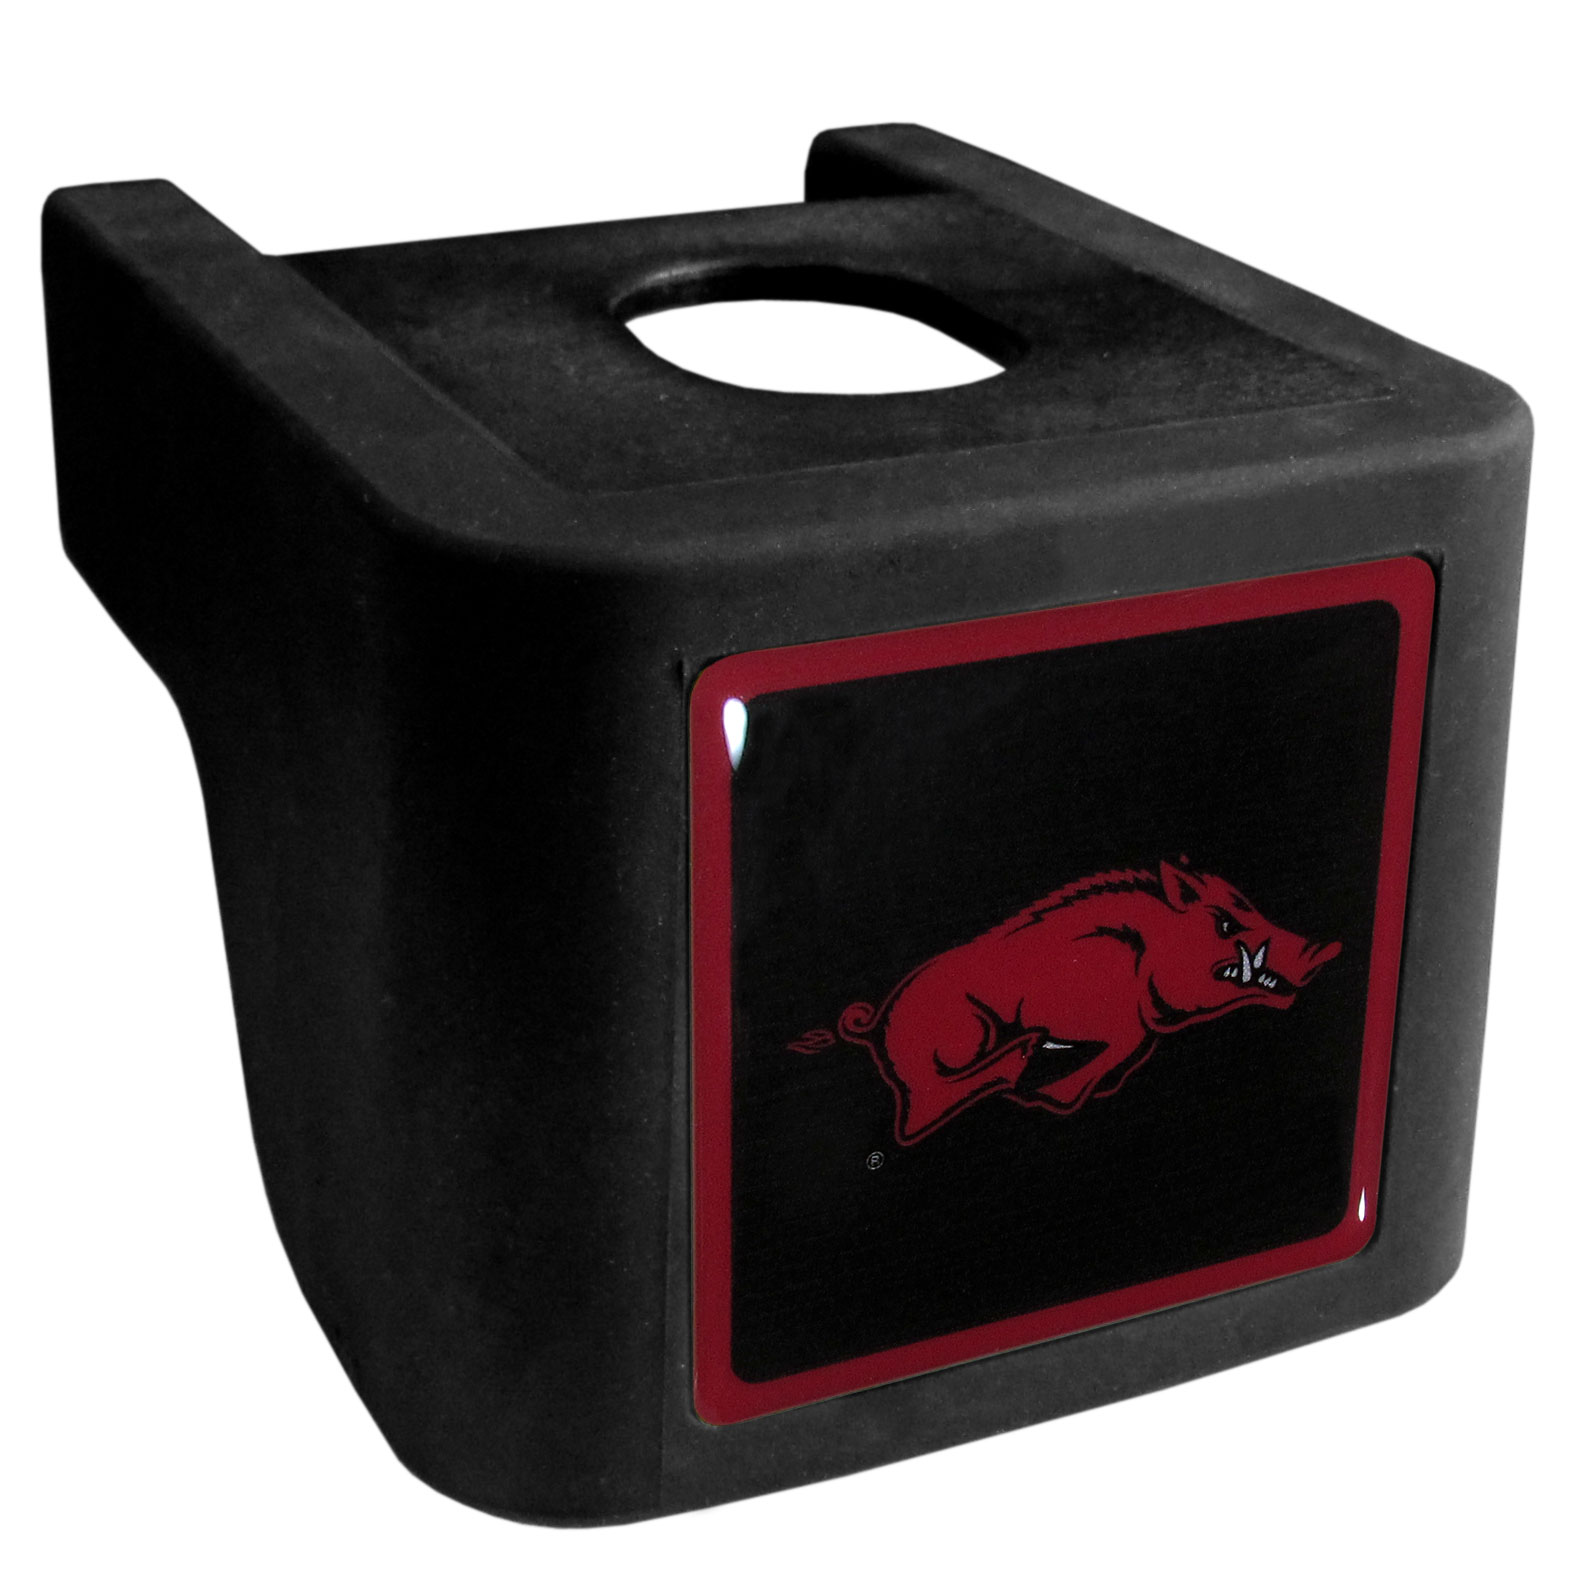 Arkansas Razorbacks Shin Shield Hitch Cover - This unique hitch cover features a large Arkansas Razorbacks logo. If you have ever hooked up a trailer or boat your have probably smashed your shins on the ball hitch a few times. This revolutionary shin shield hitch cover provides your much abused shins with the protection they deserve! The tough rubber hitch is rated to work with Class V hitch receivers hauling up to 17,000 gross trailer weight and 1,700 tongue weight allowing you to leave it on while hauling.